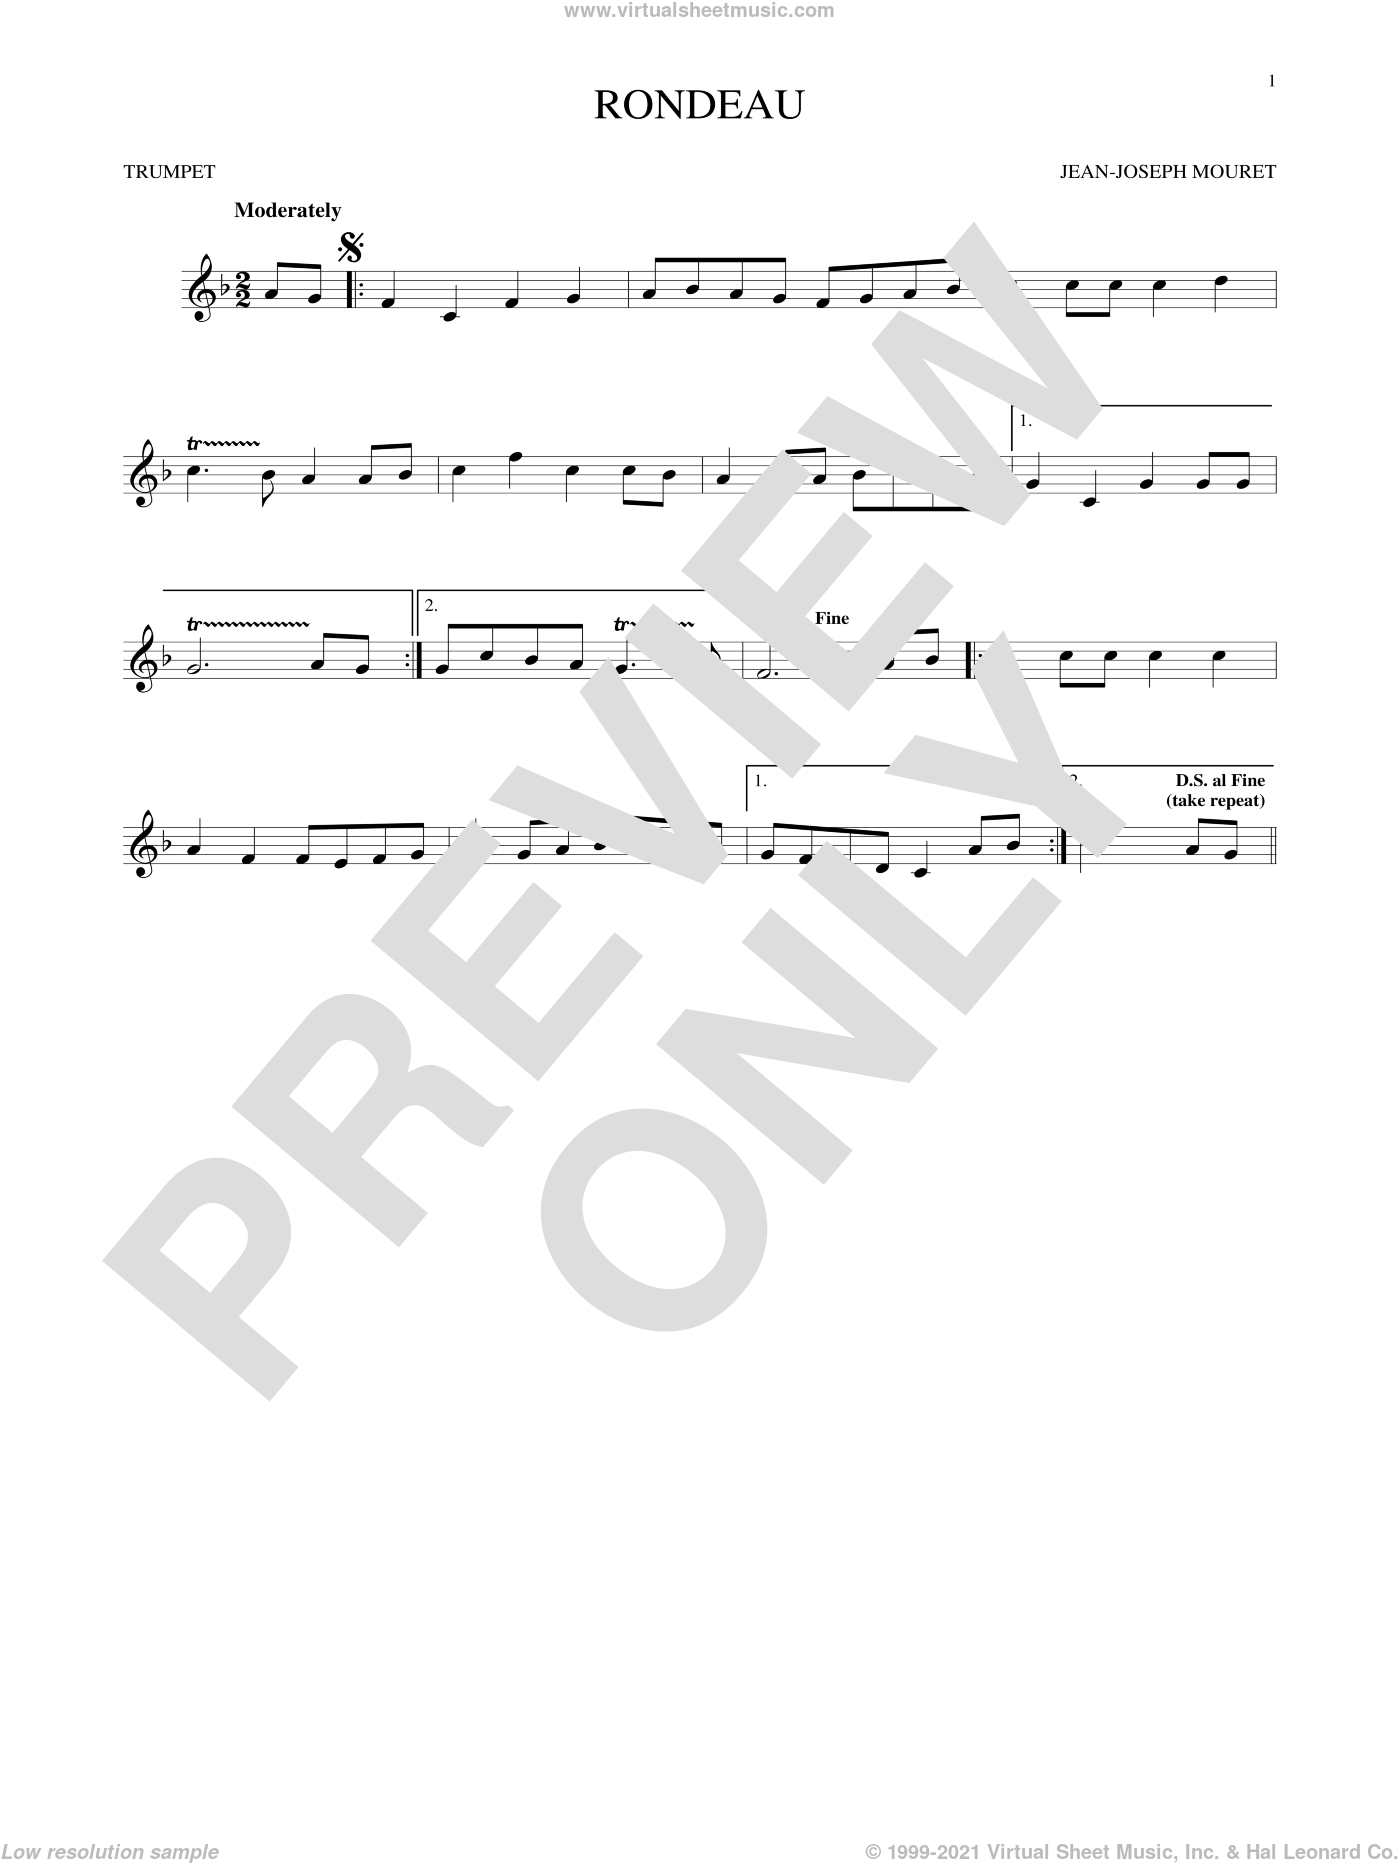 Fanfare Rondeau sheet music for trumpet solo by Jean-Joseph Mouret, classical score, intermediate skill level